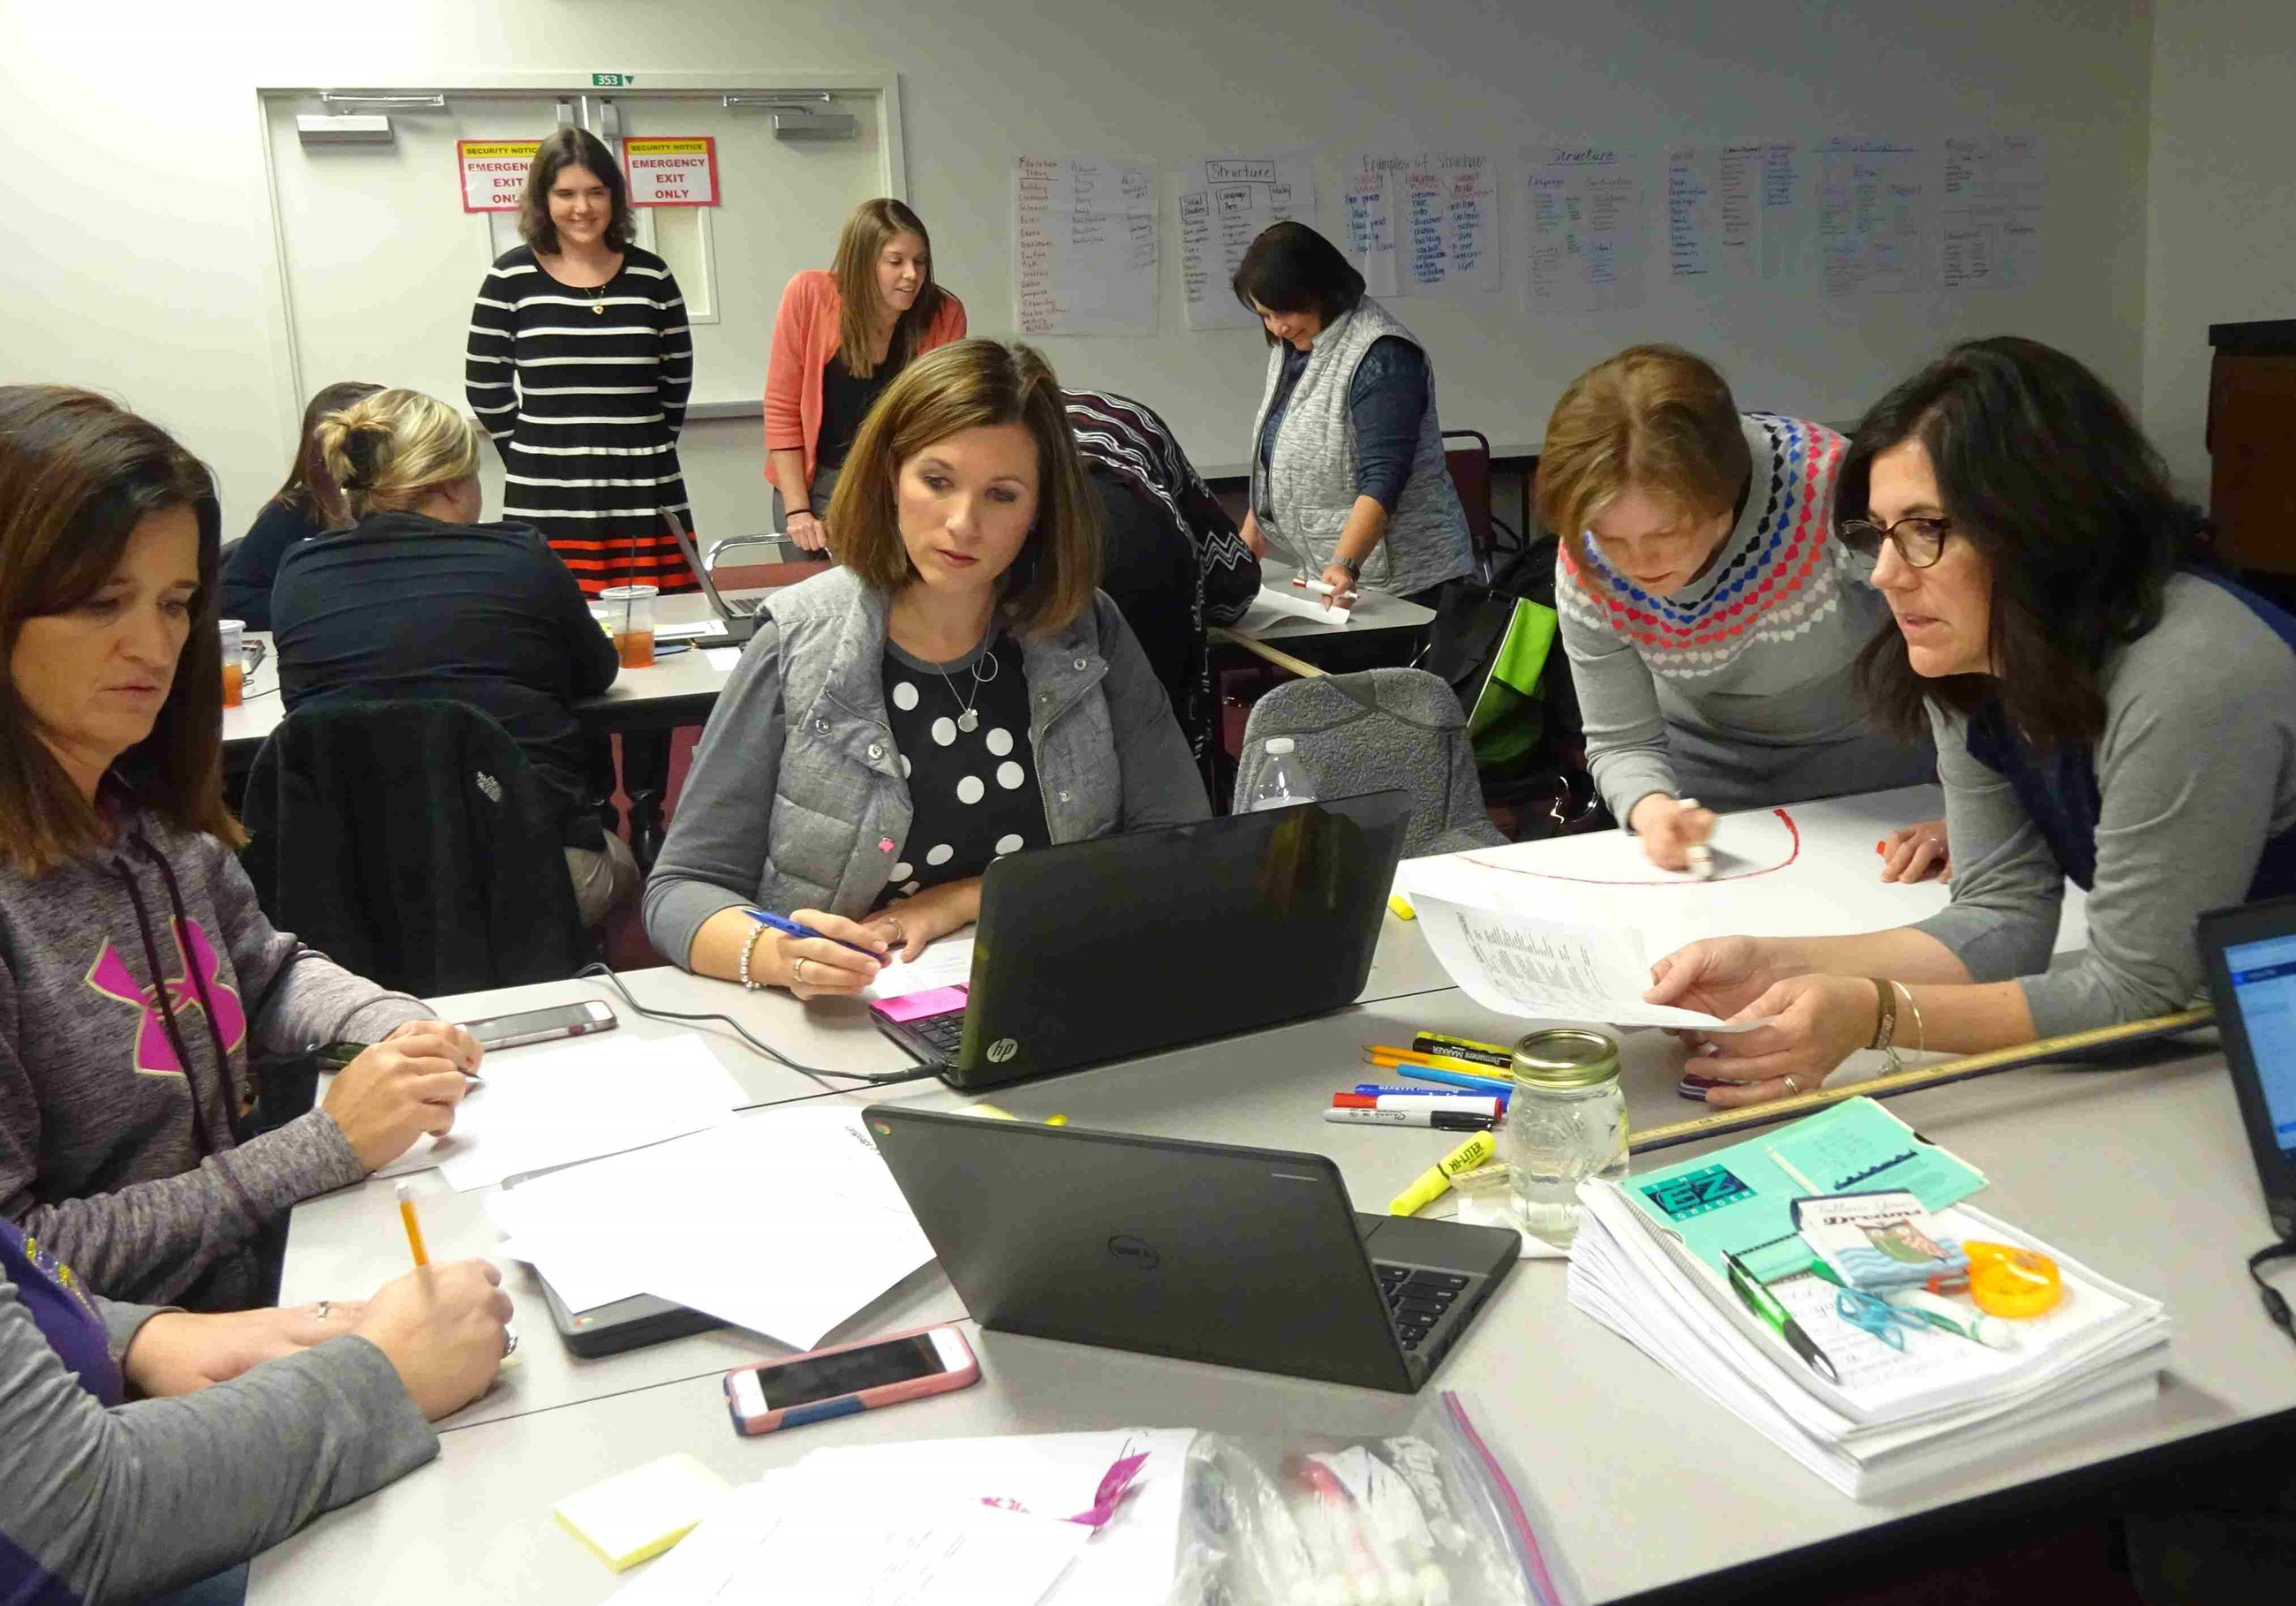 TCESC provided gifted professional development for teachers throughout the county.